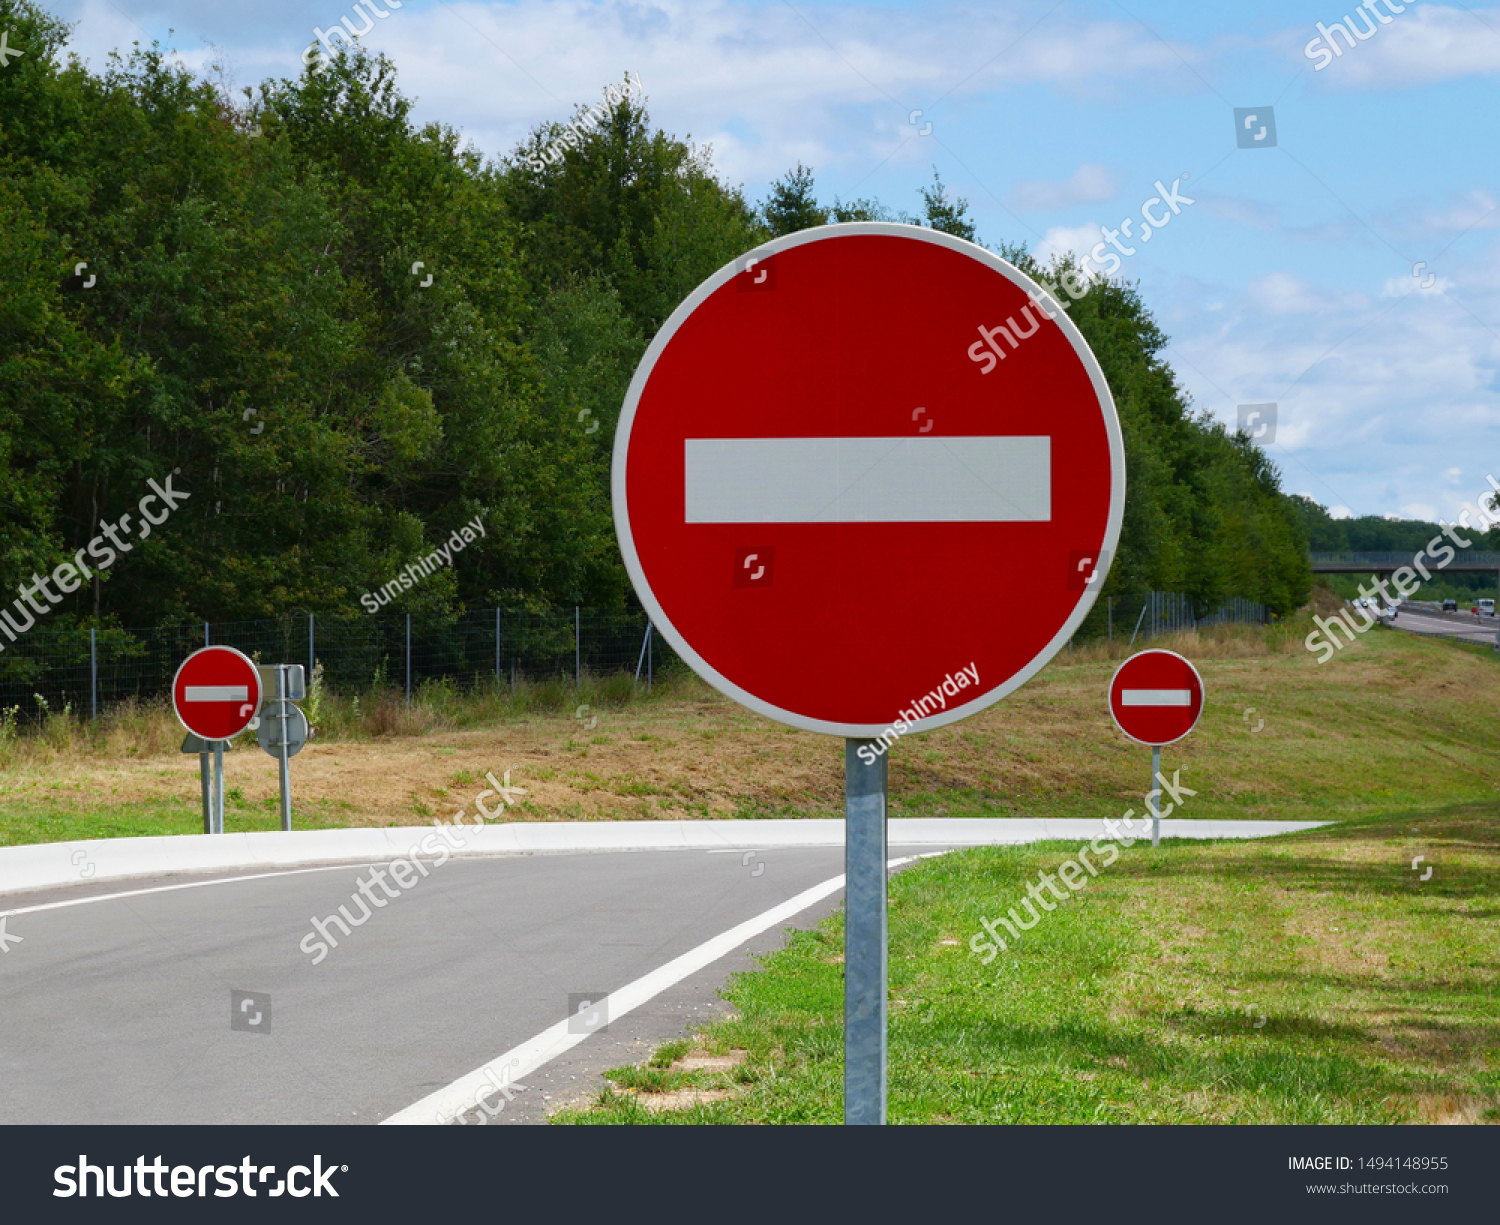 stock-photo-no-entry-traffic-sign-on-a-h